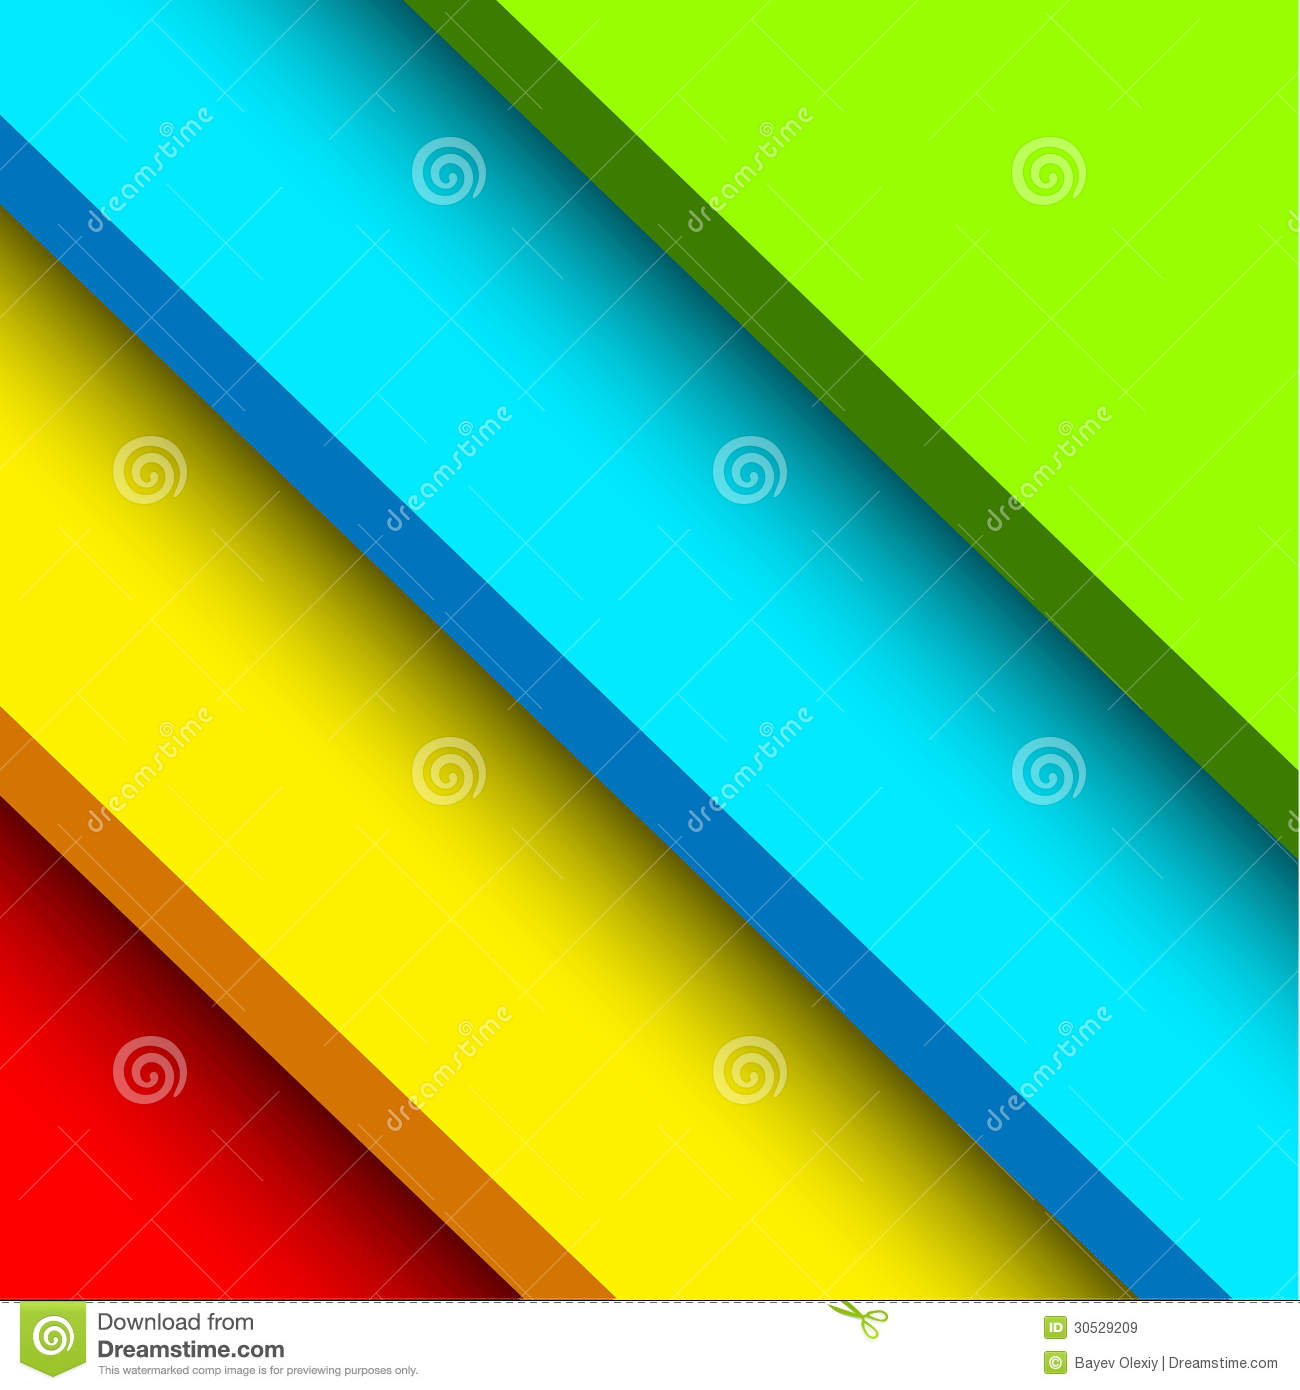 17 Best Images About Color Block On Pinterest: Abstract Color Block Background Royalty Free Stock Images